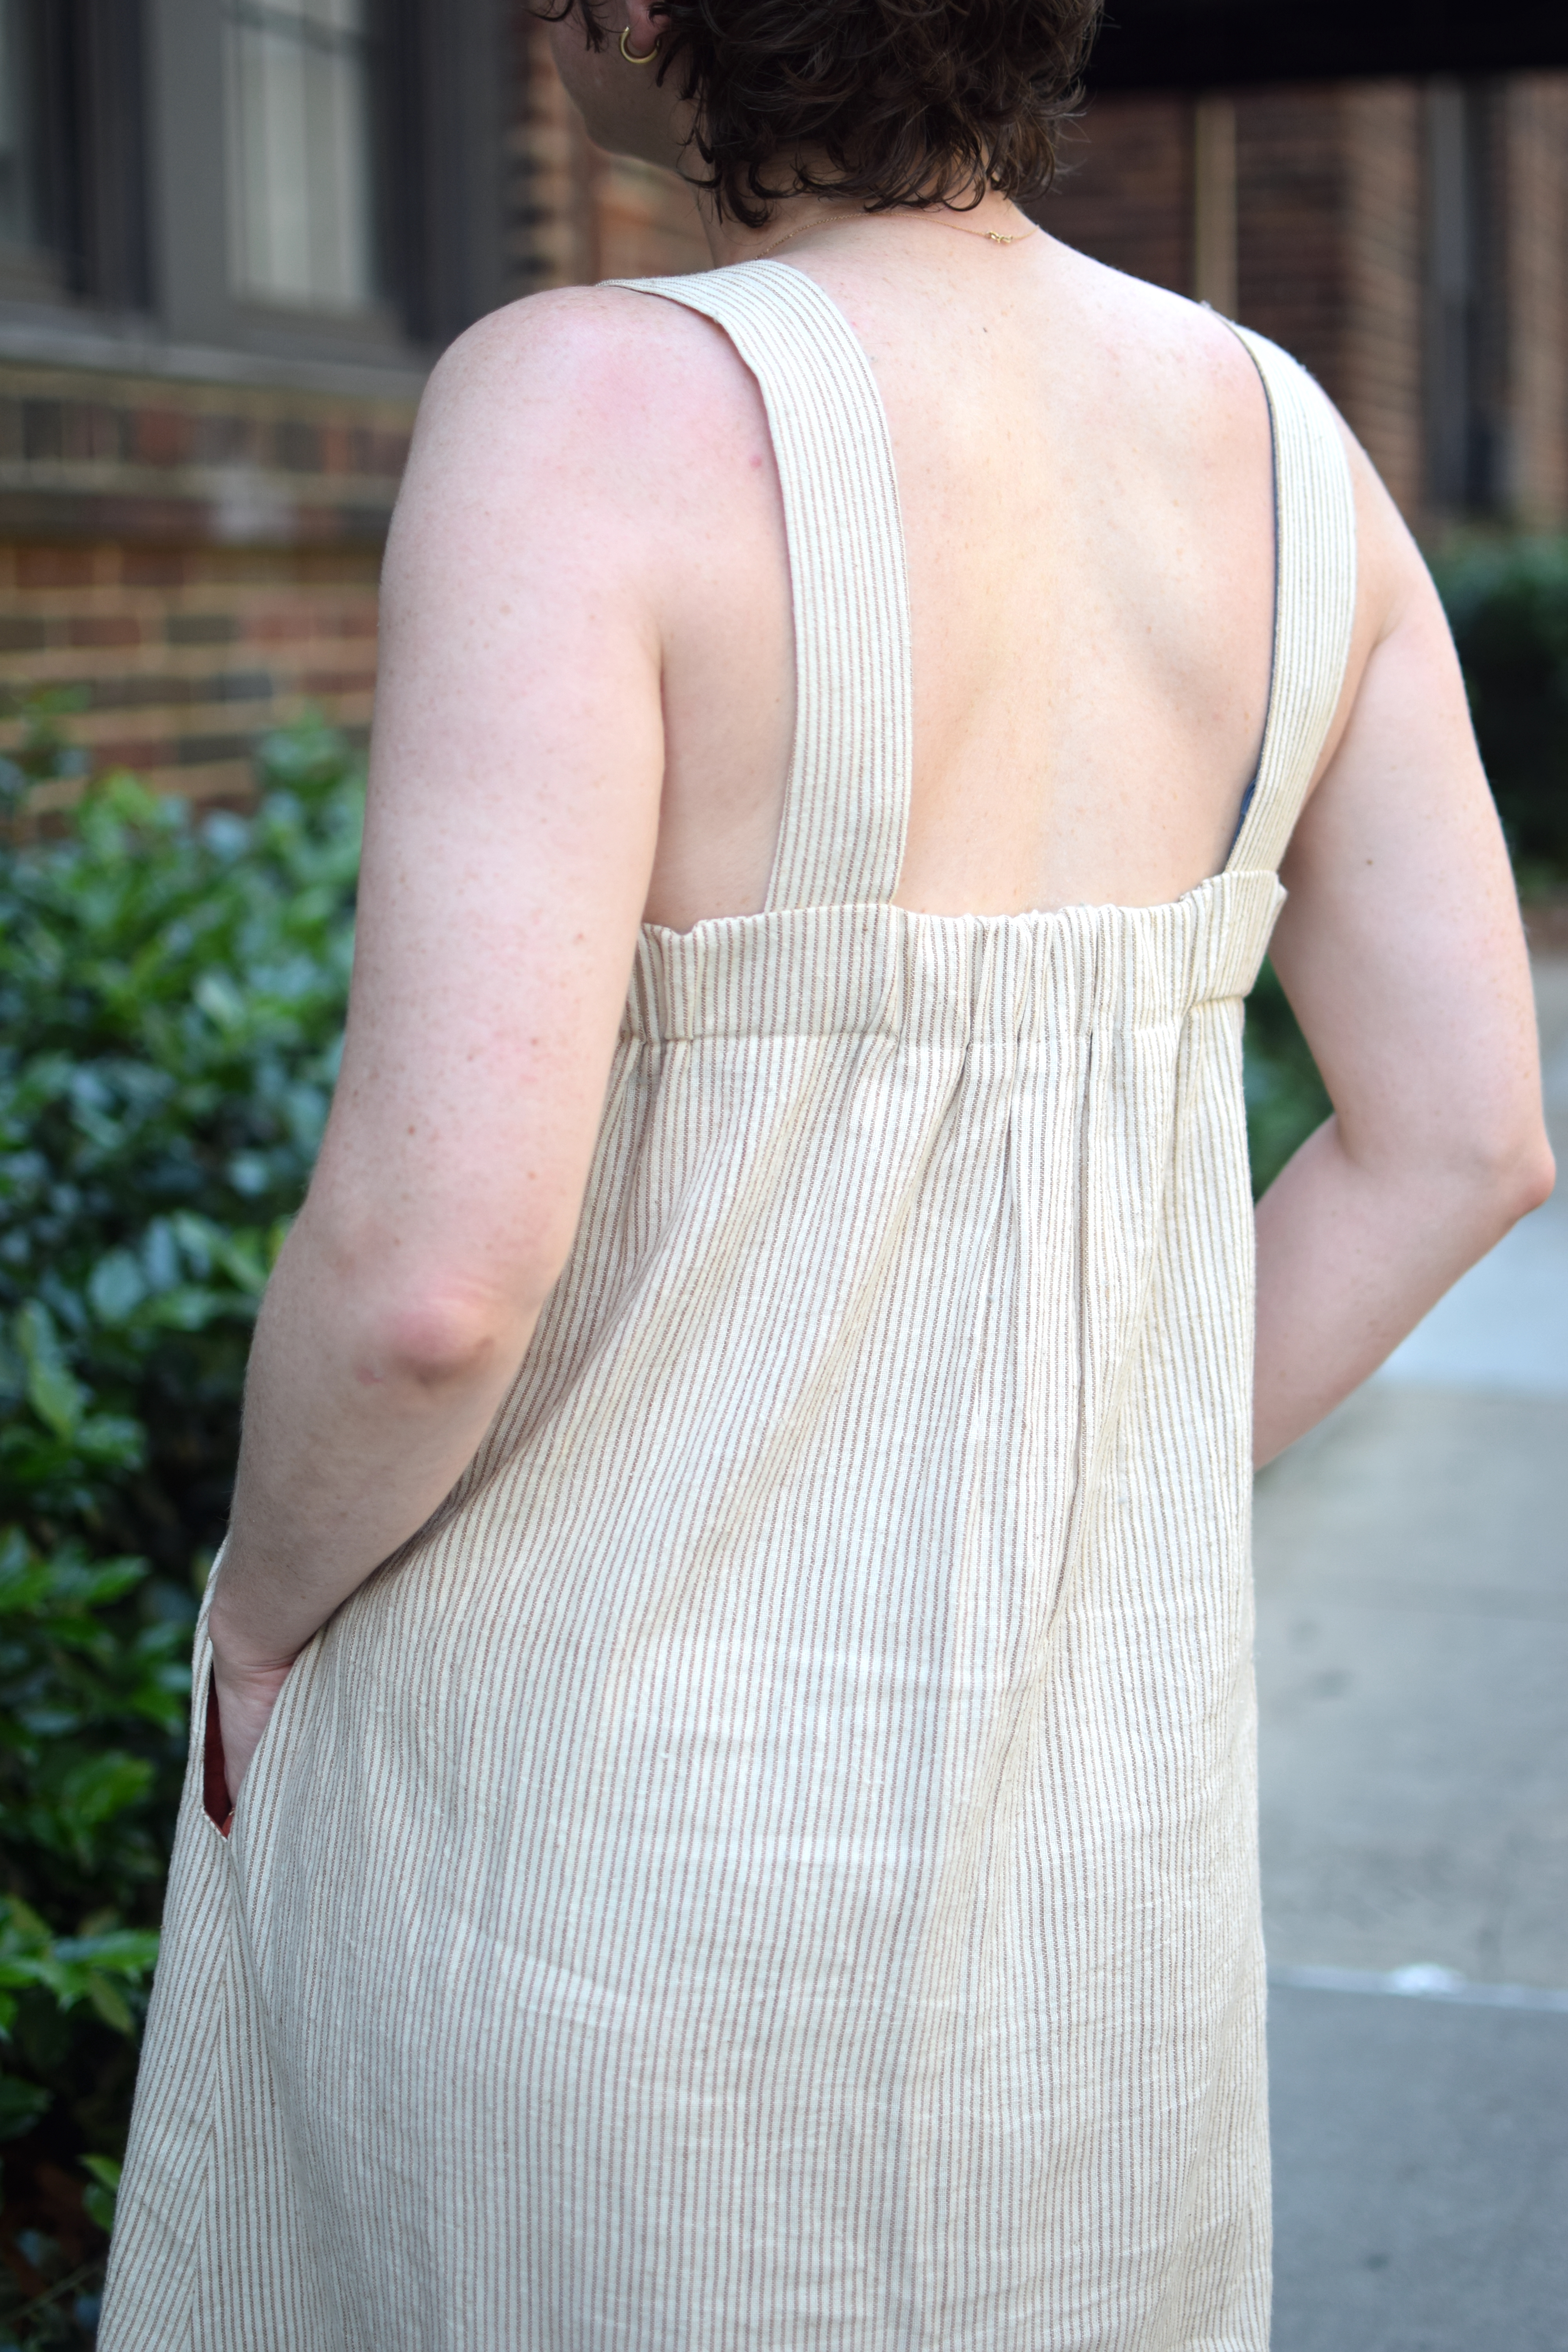 the back view of a brown and white striped dress.